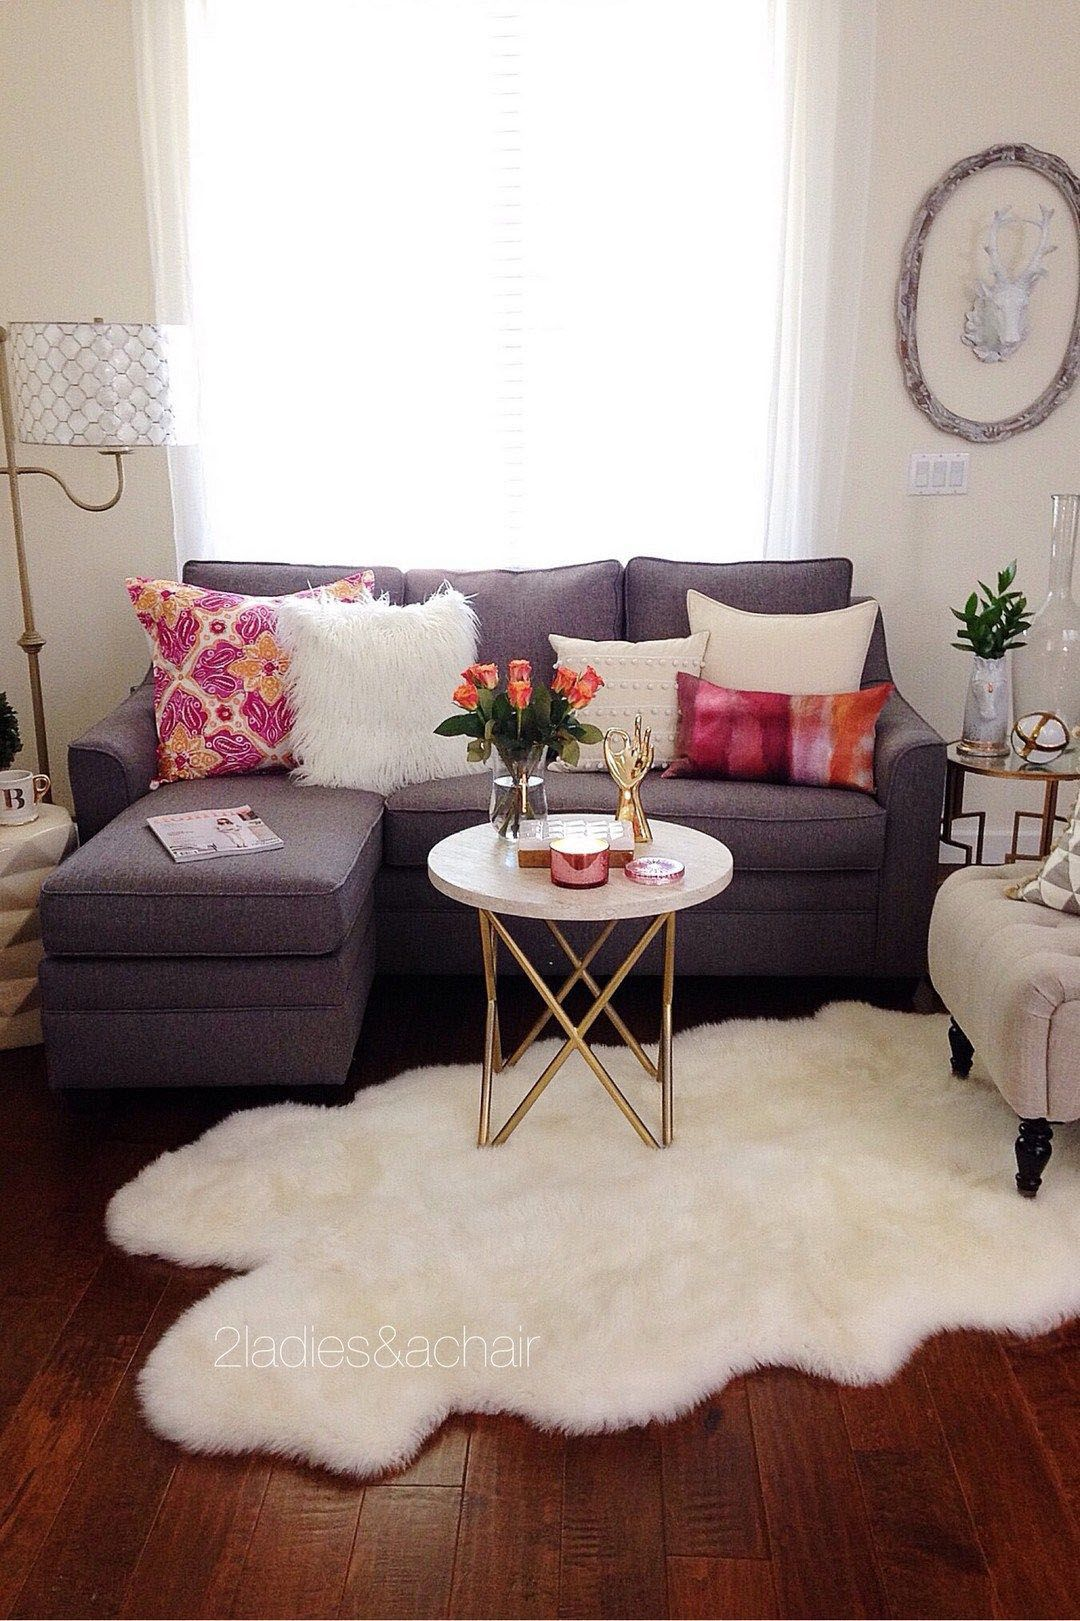 15 Best Apartment Decorating Ideas And Techniques Small